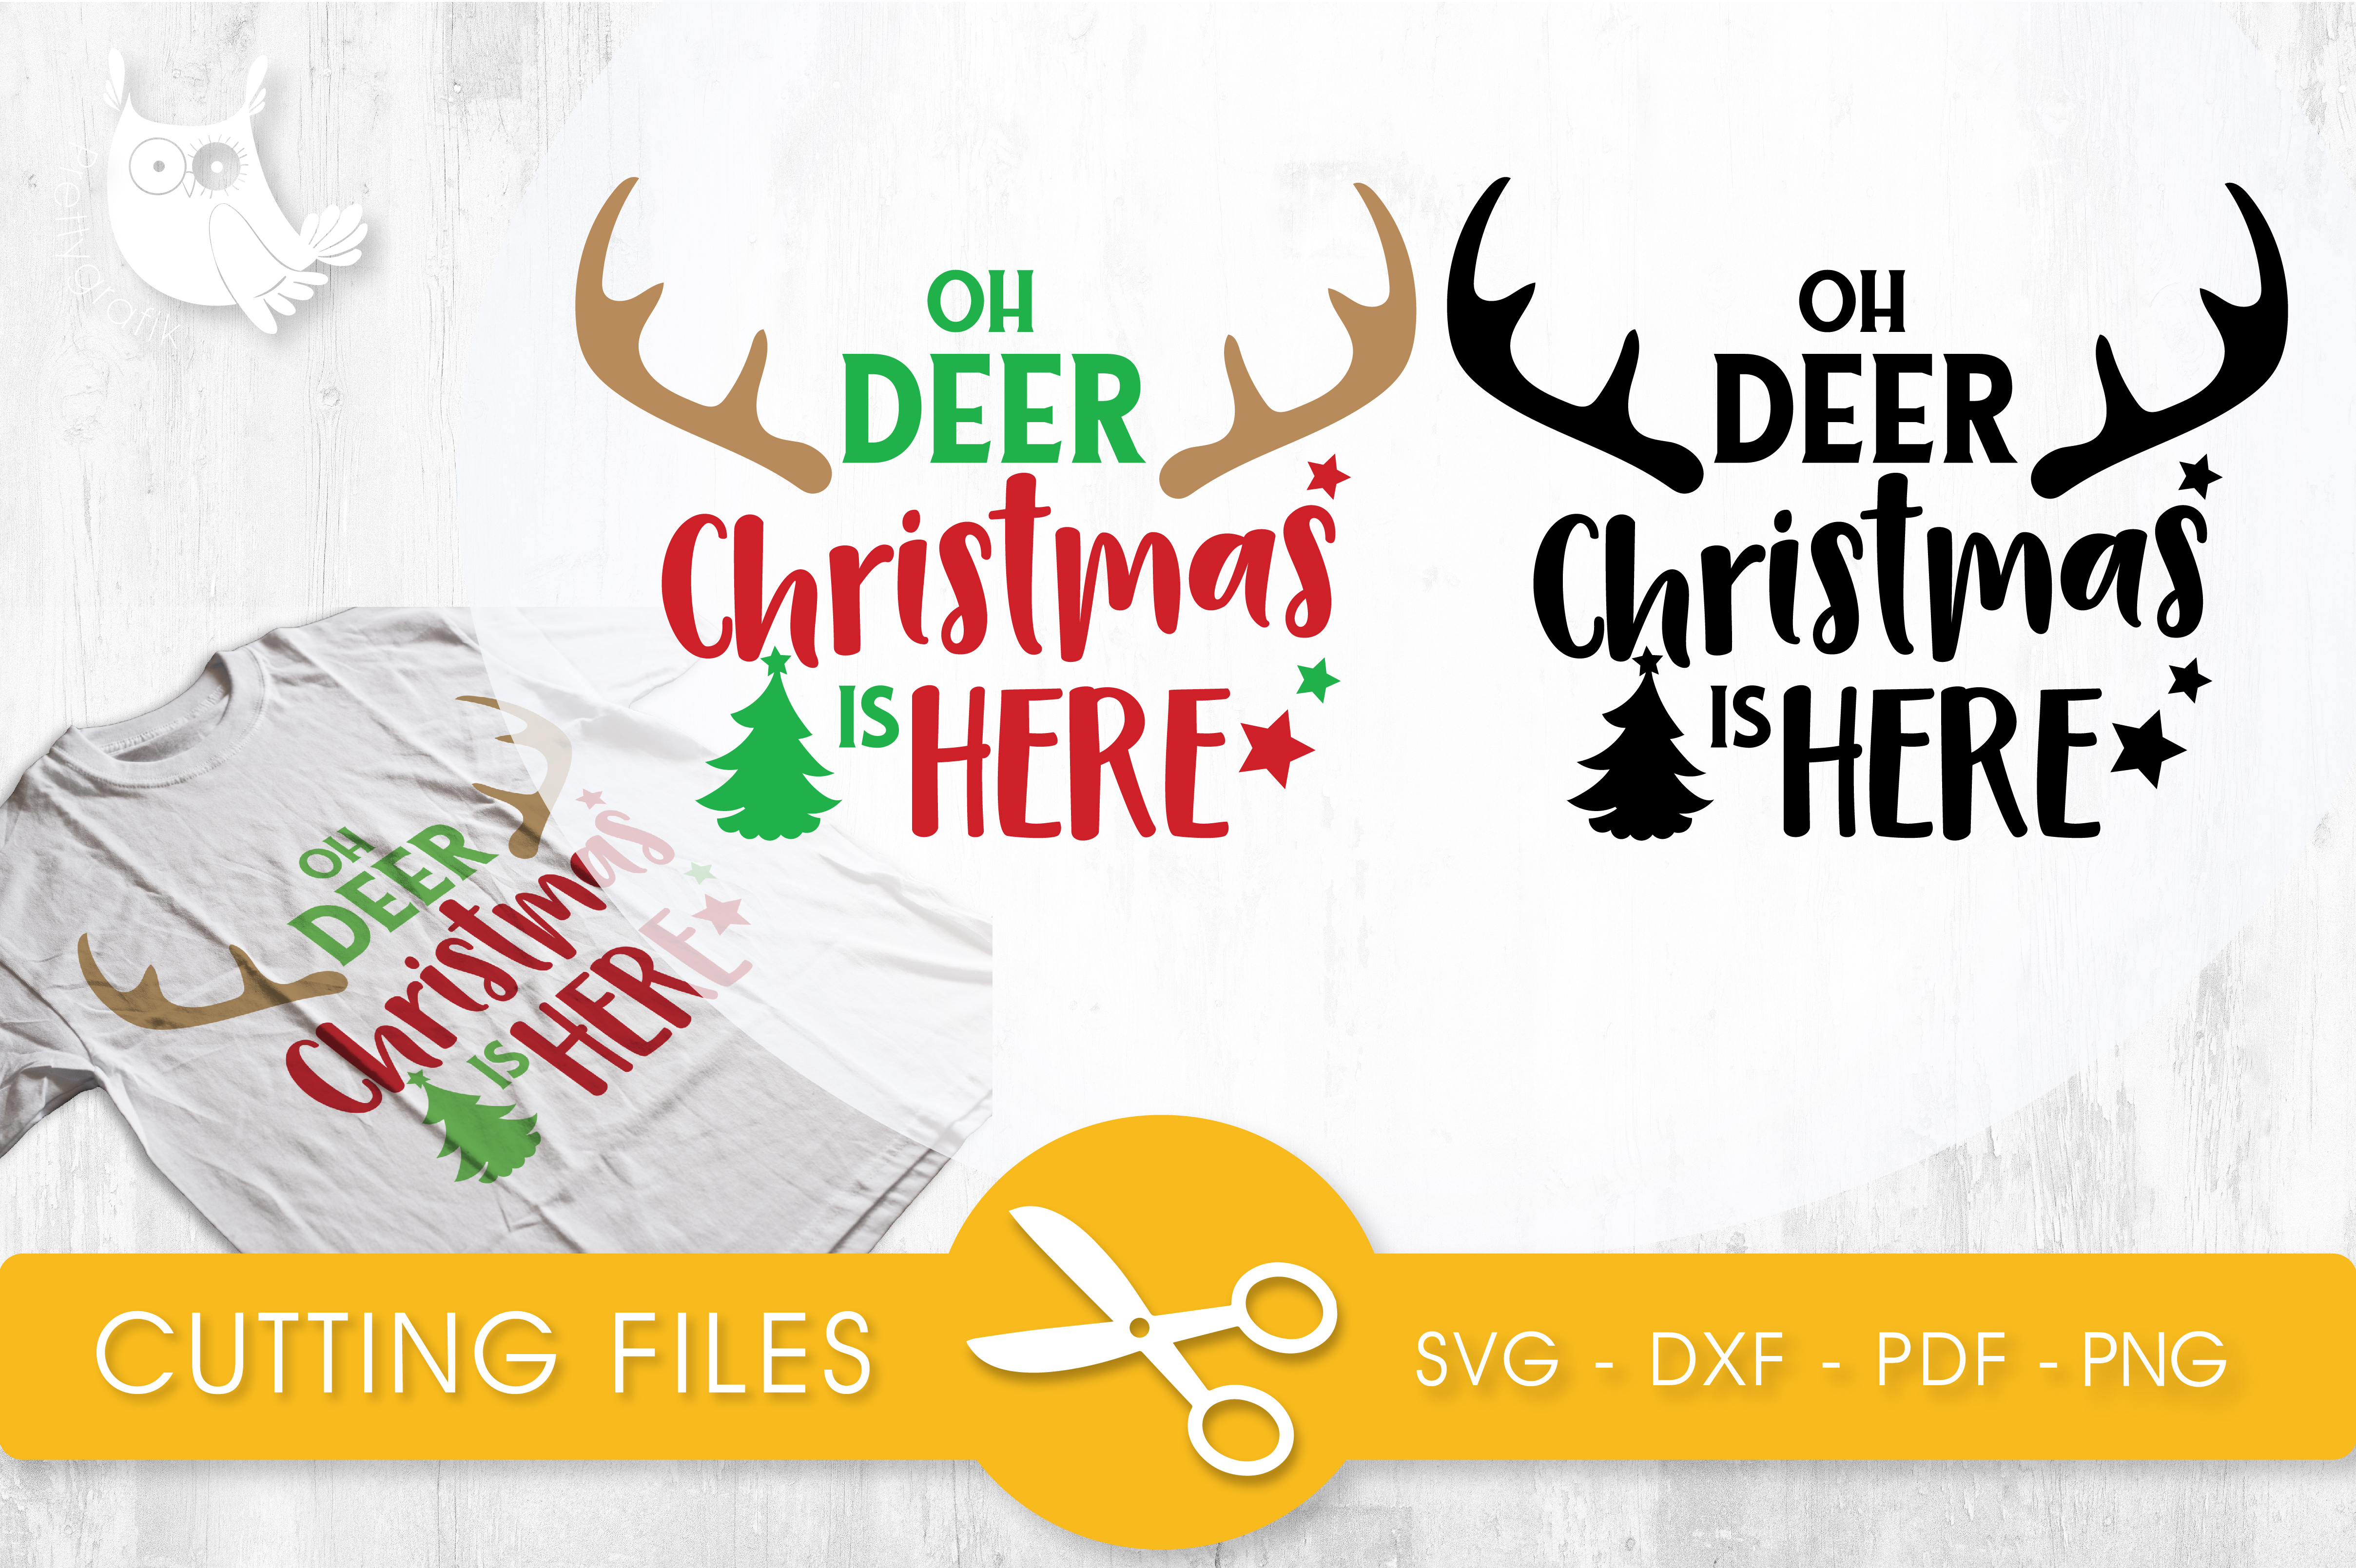 Download Free Oh Deer Christmas Is Here Graphic By Prettycuttables for Cricut Explore, Silhouette and other cutting machines.